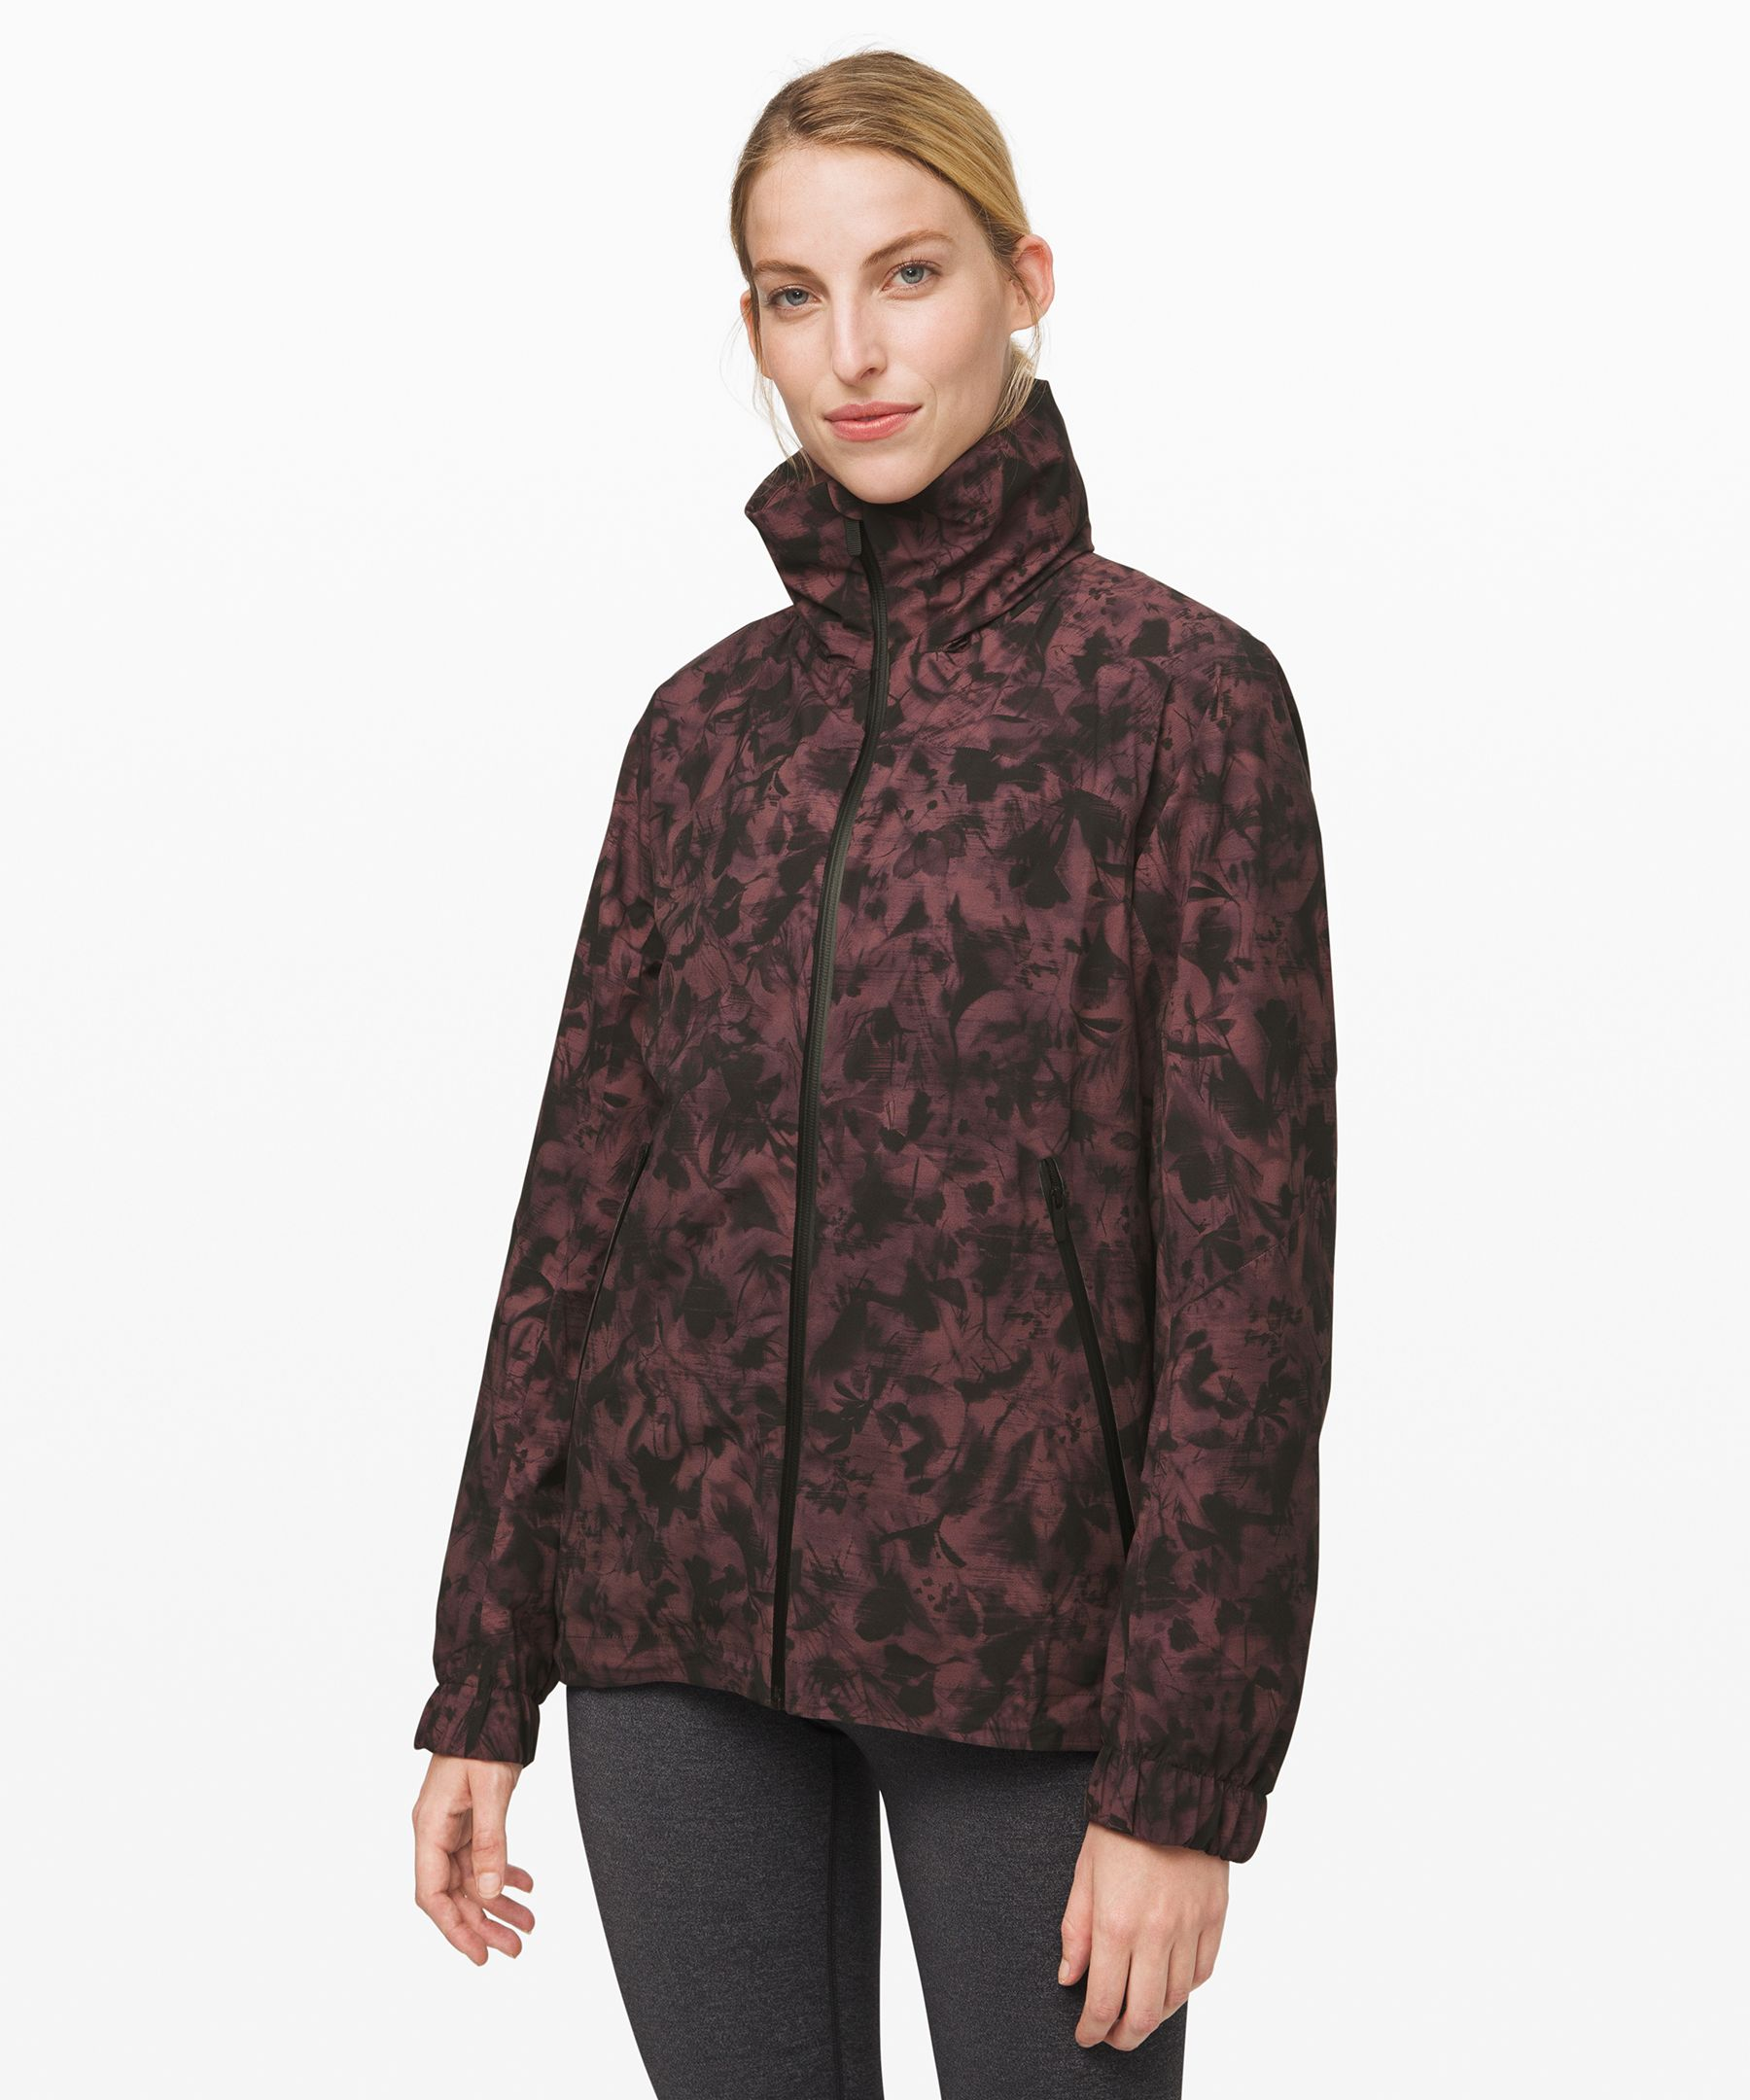 Don\\\'t let a little wet weather  keep you from outdoor  adventures. This waterproof  jacket is fully seam-sealed so  you can stay dry as you run,  hike, or walk the city streets.